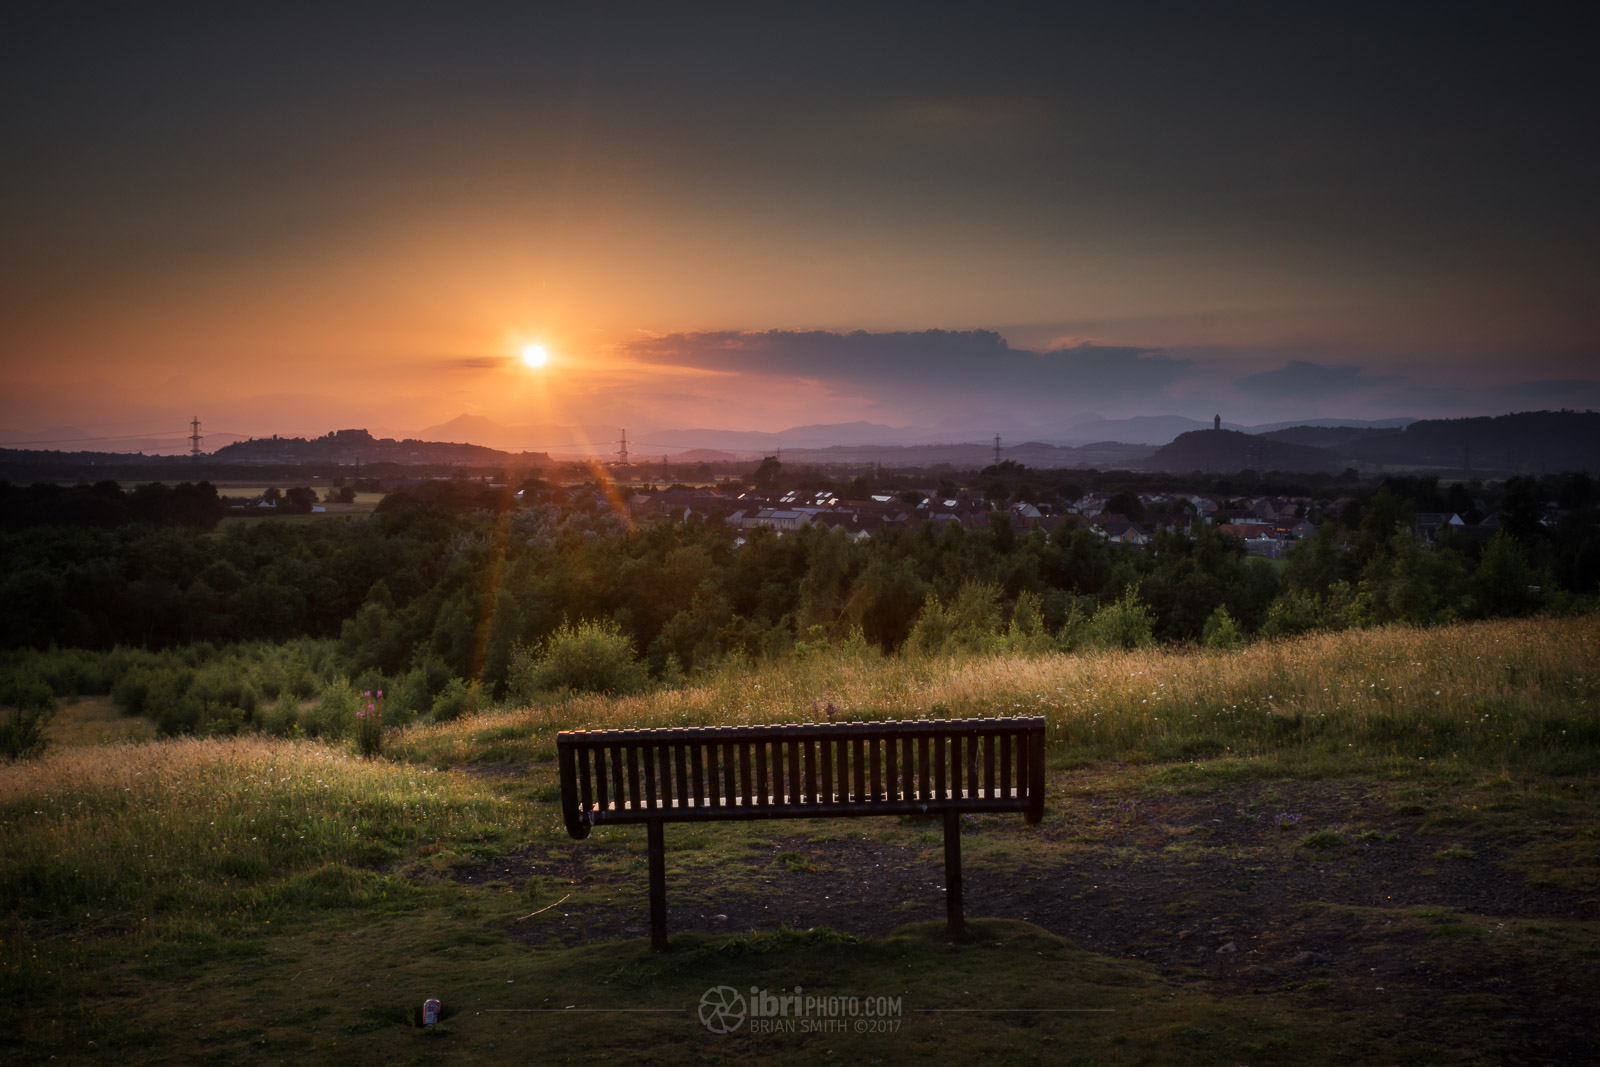 Sun setting beyond Stirling and the mountains of the Trossachs beyond. Perched on top of the, now nature reclaimed, colliery bing near one of the old eastern mining villages in the Stirling area.